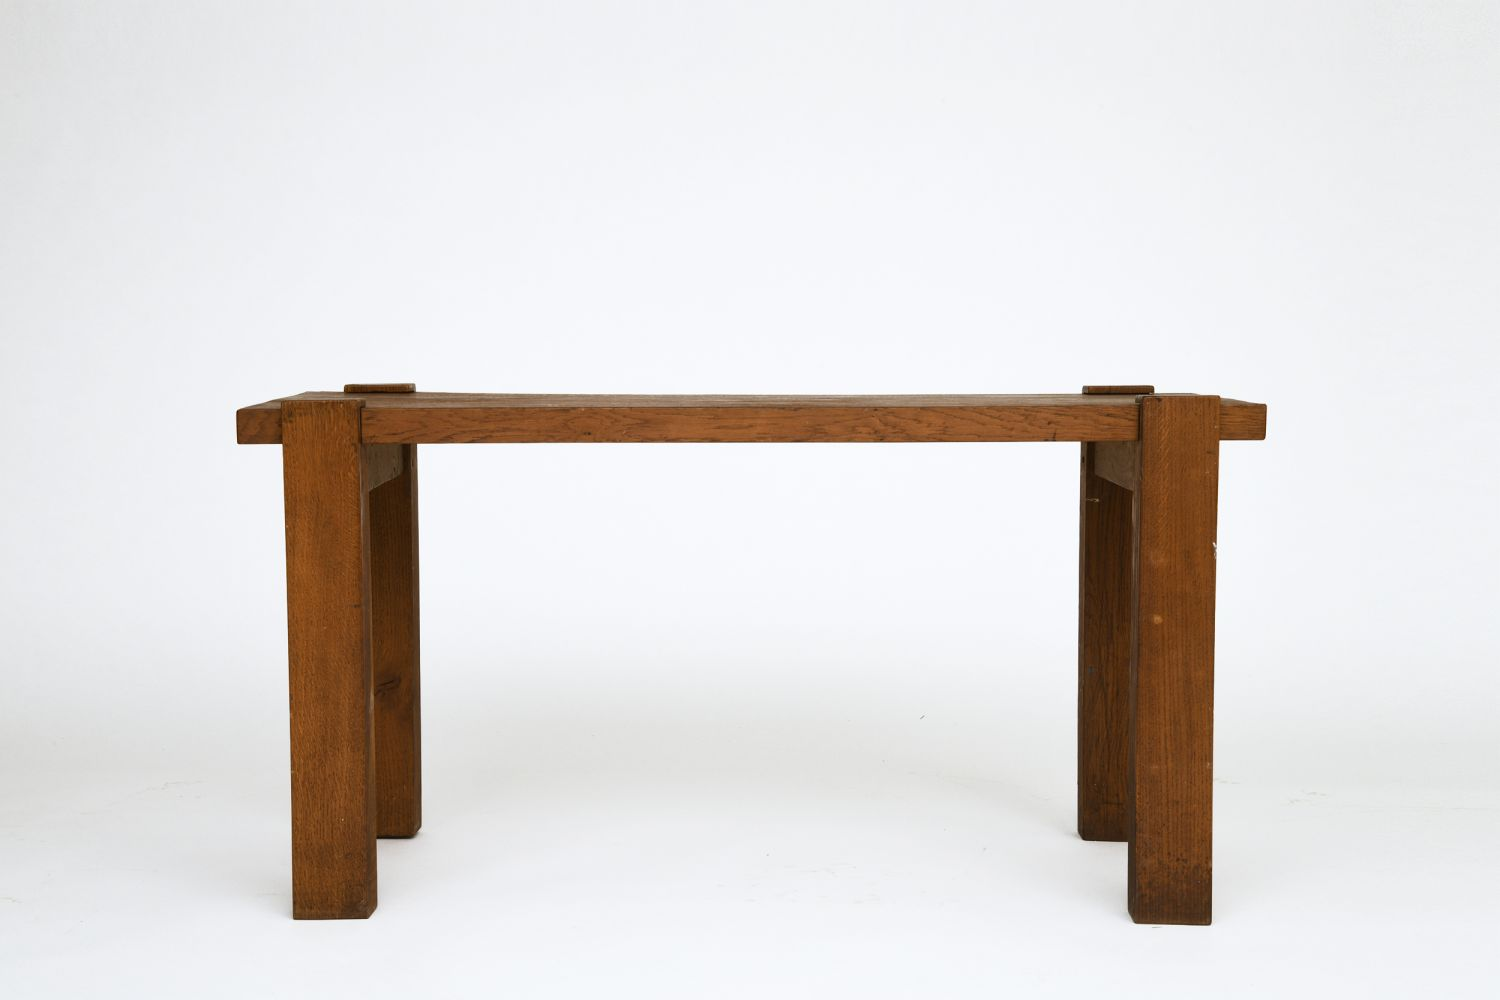 Henry Jacques Le Même's Table/Console, full straight view from eye-level